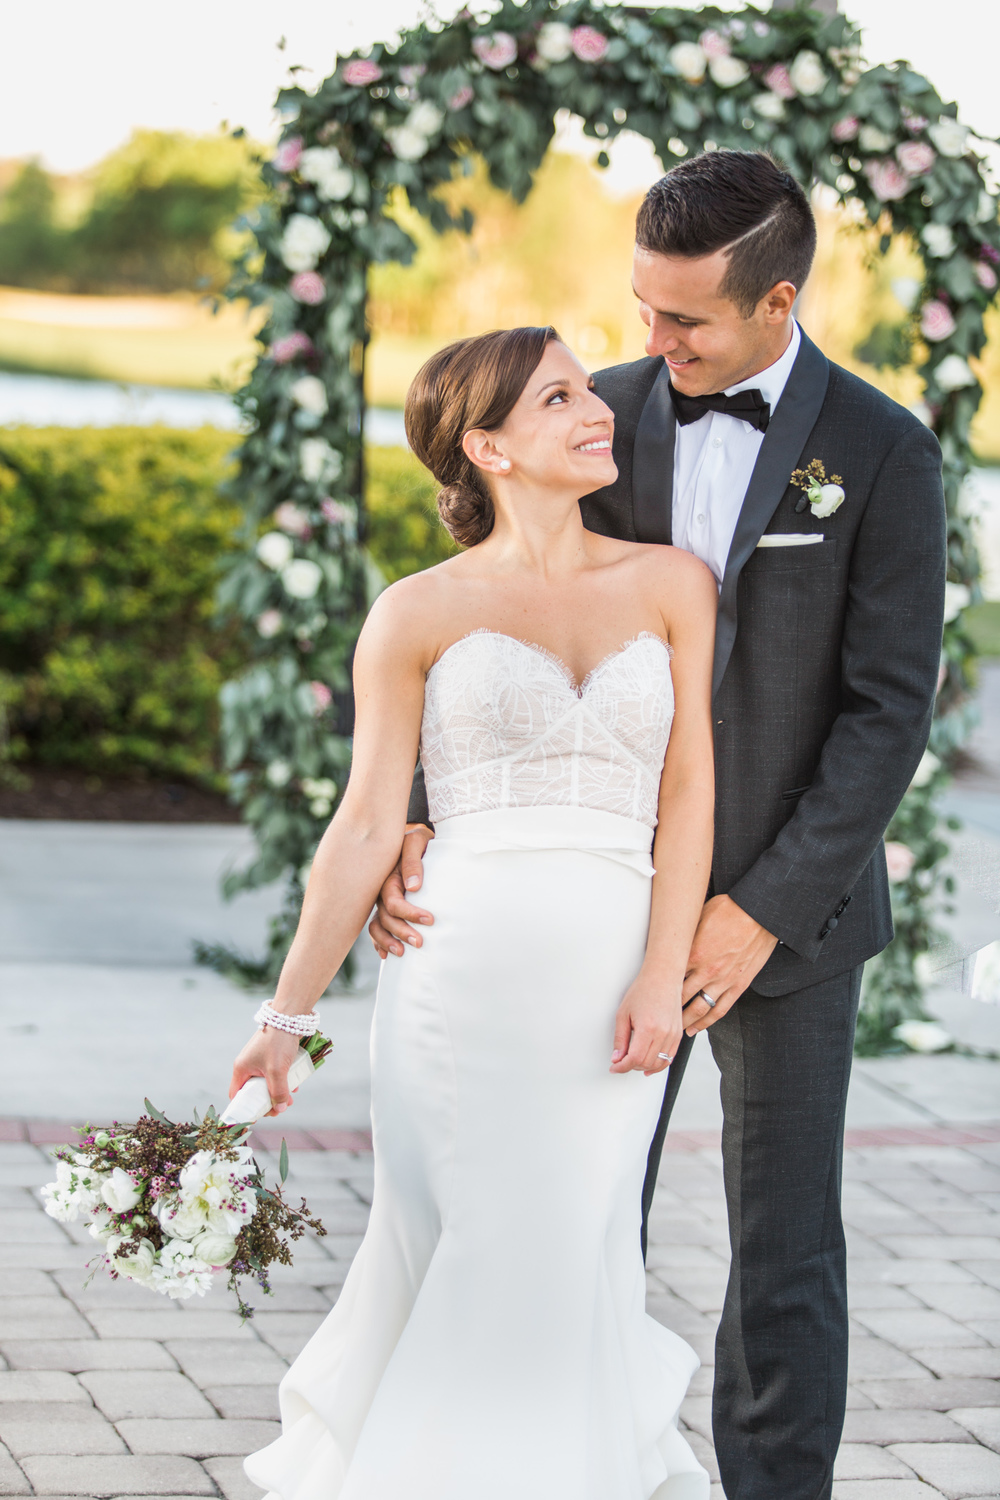 David & Allie - Shingle Creek Wedding Sneak Peek Spring 2016 - Web 17.jpg